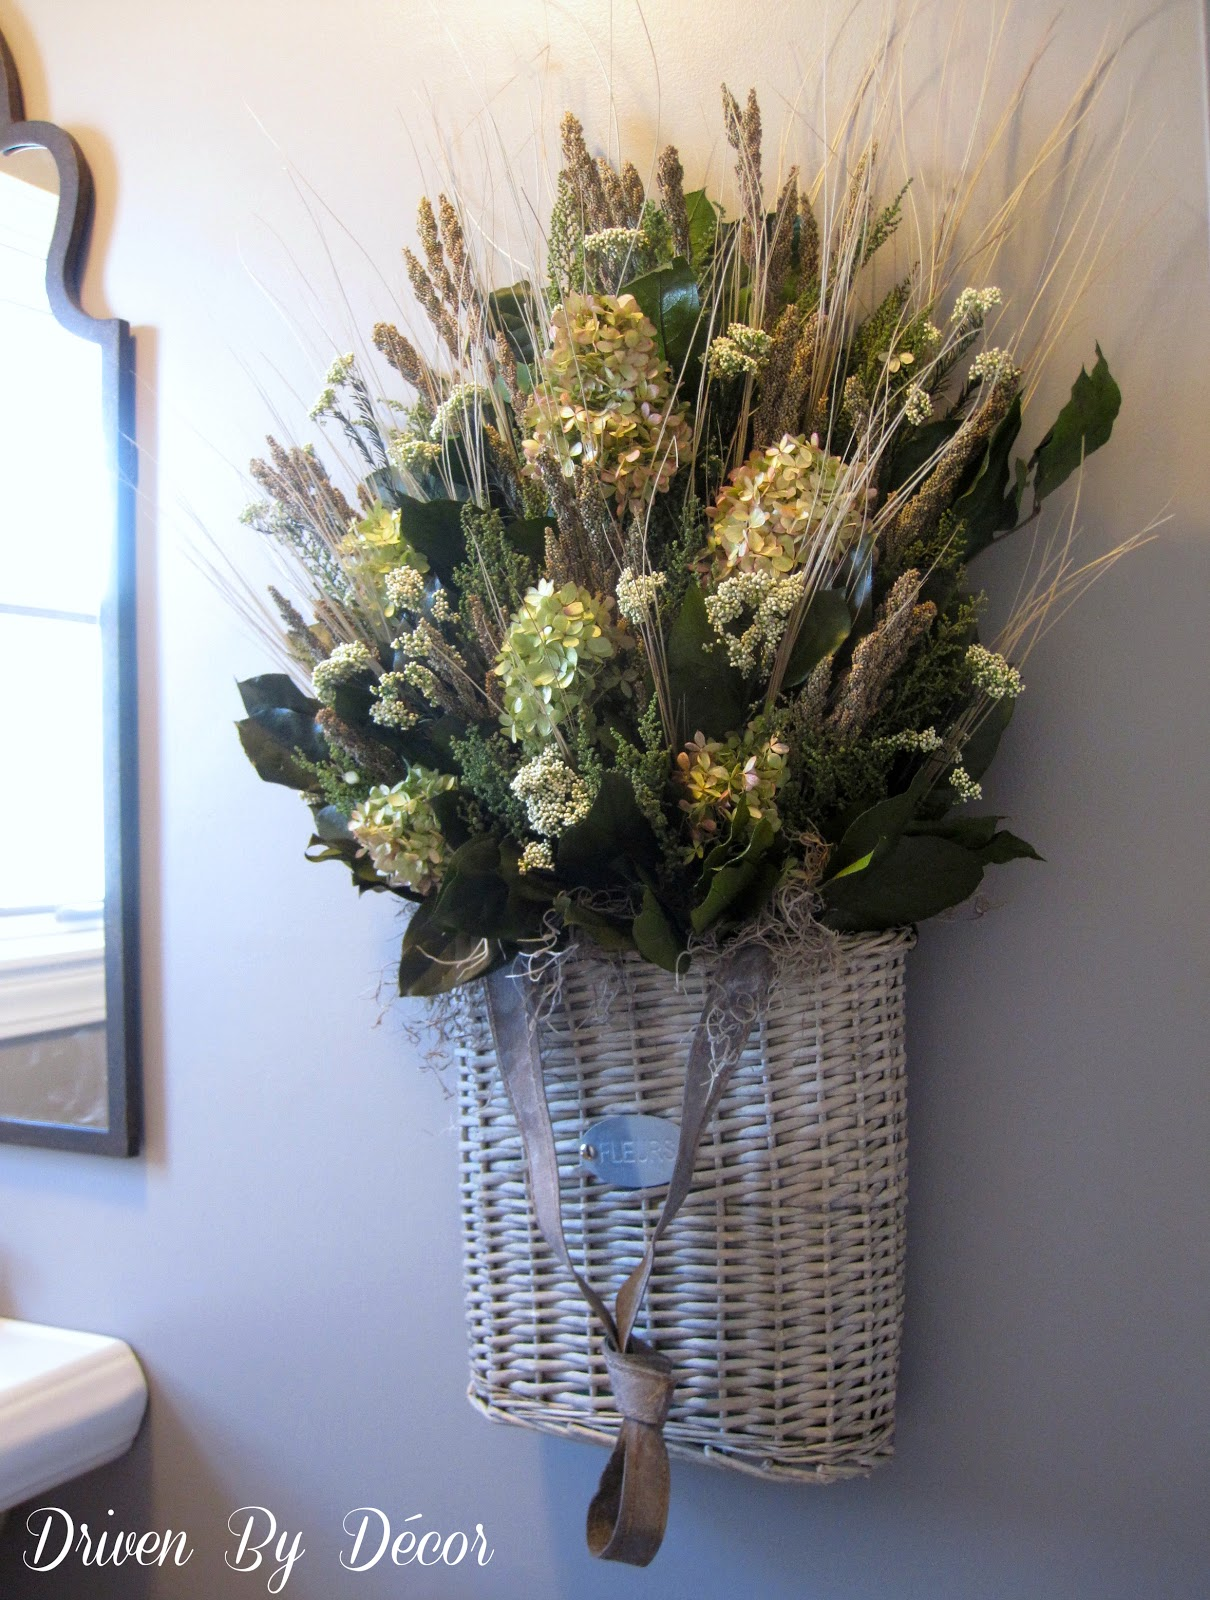 Basket Flower Decoration Whats Over Your Toilet Driven By Decor